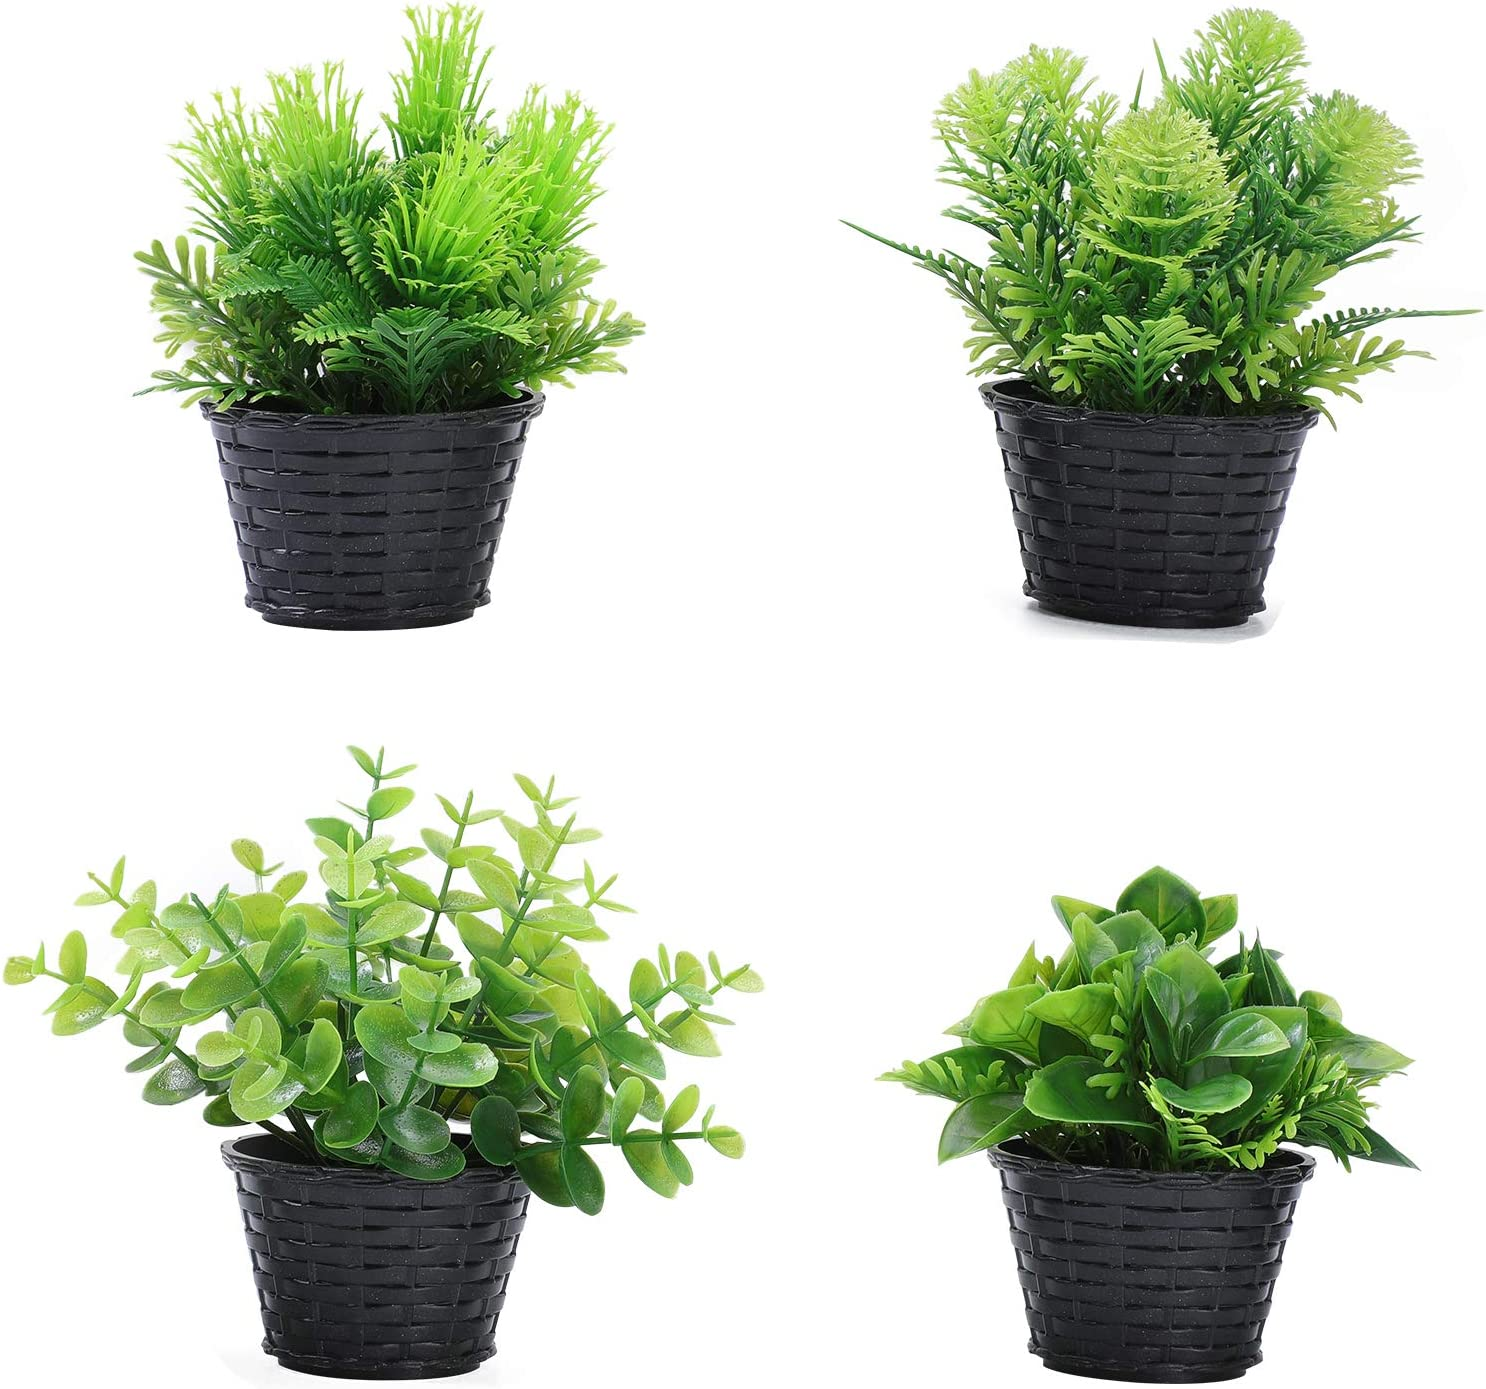 Green Decoration Max 49% OFF Artificial Plants Small Fake Ranking TOP2 Potted Realistic P